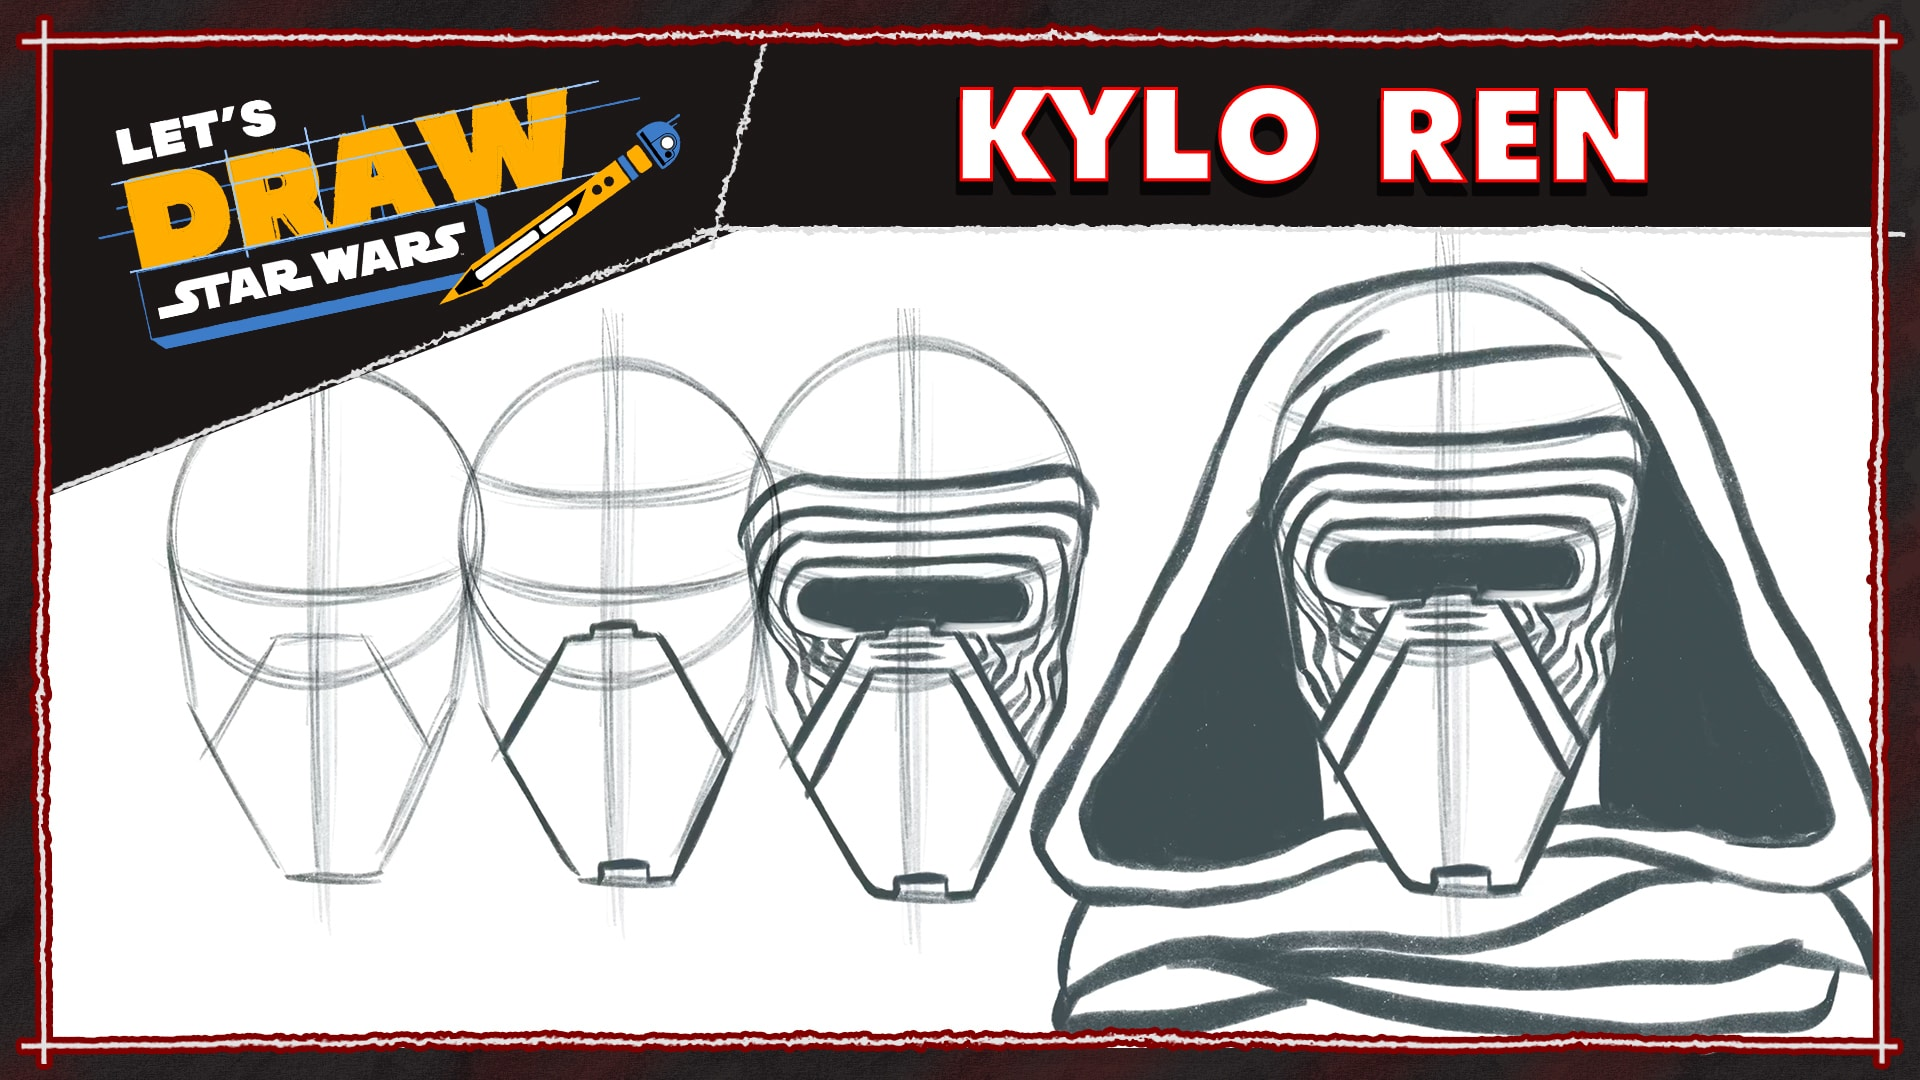 Let's Draw! Kylo Ren